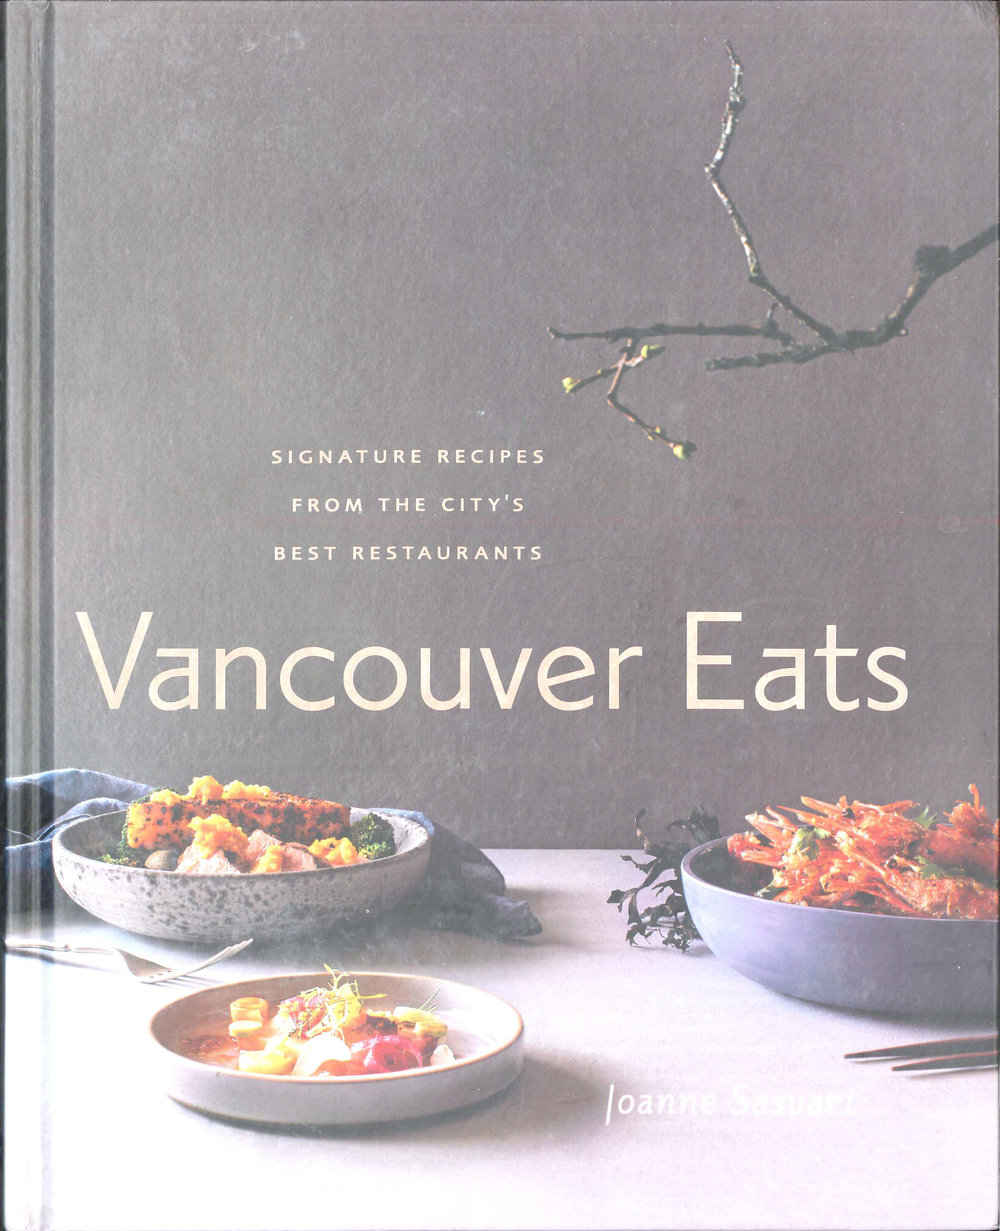 00 vancouver eats - cover.jpg